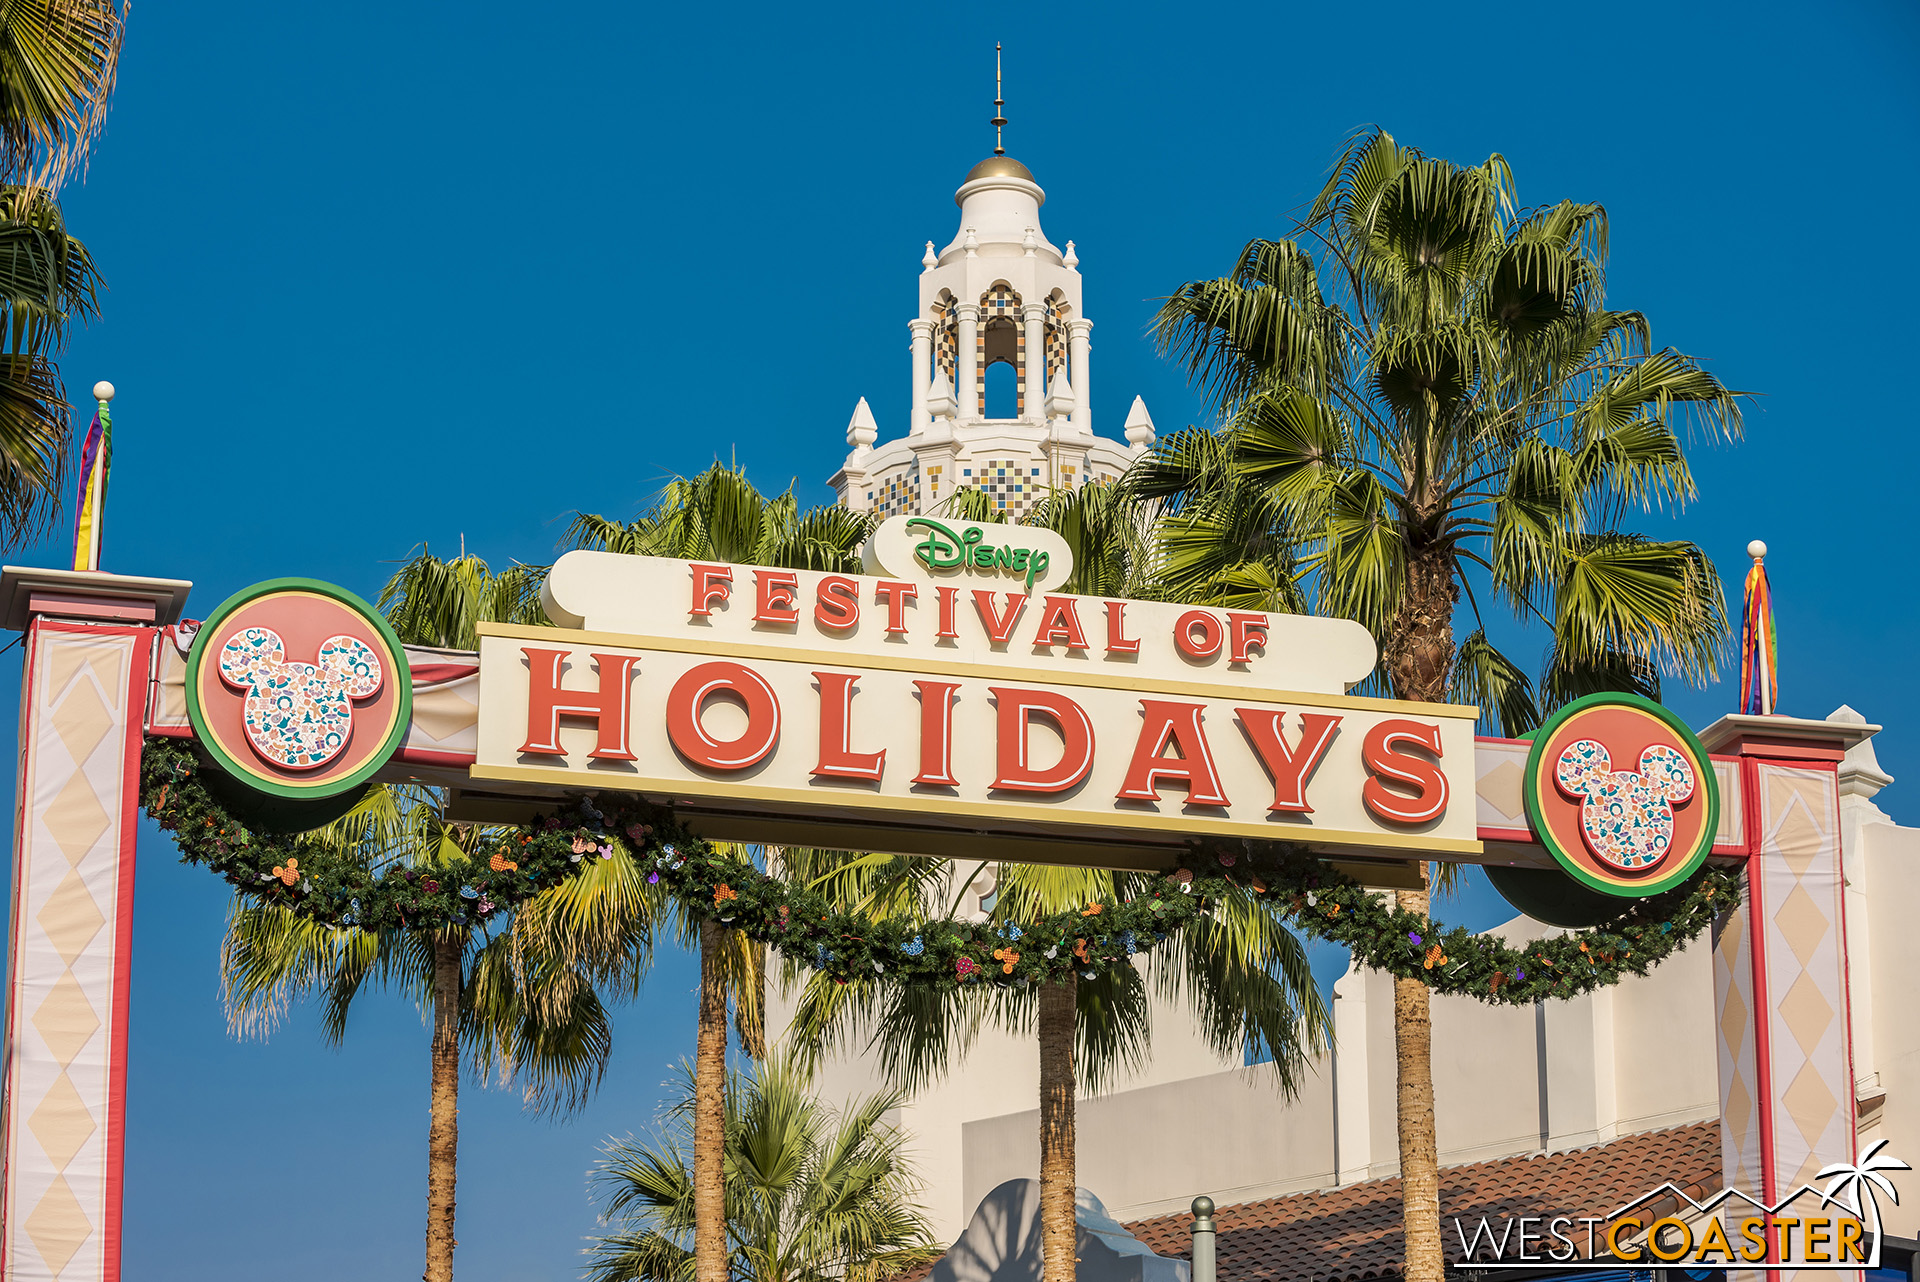 The Festival of Holidays is back along the Parade Corridor between Buena Vista Street and Pacific Wharf and Paradise Park.